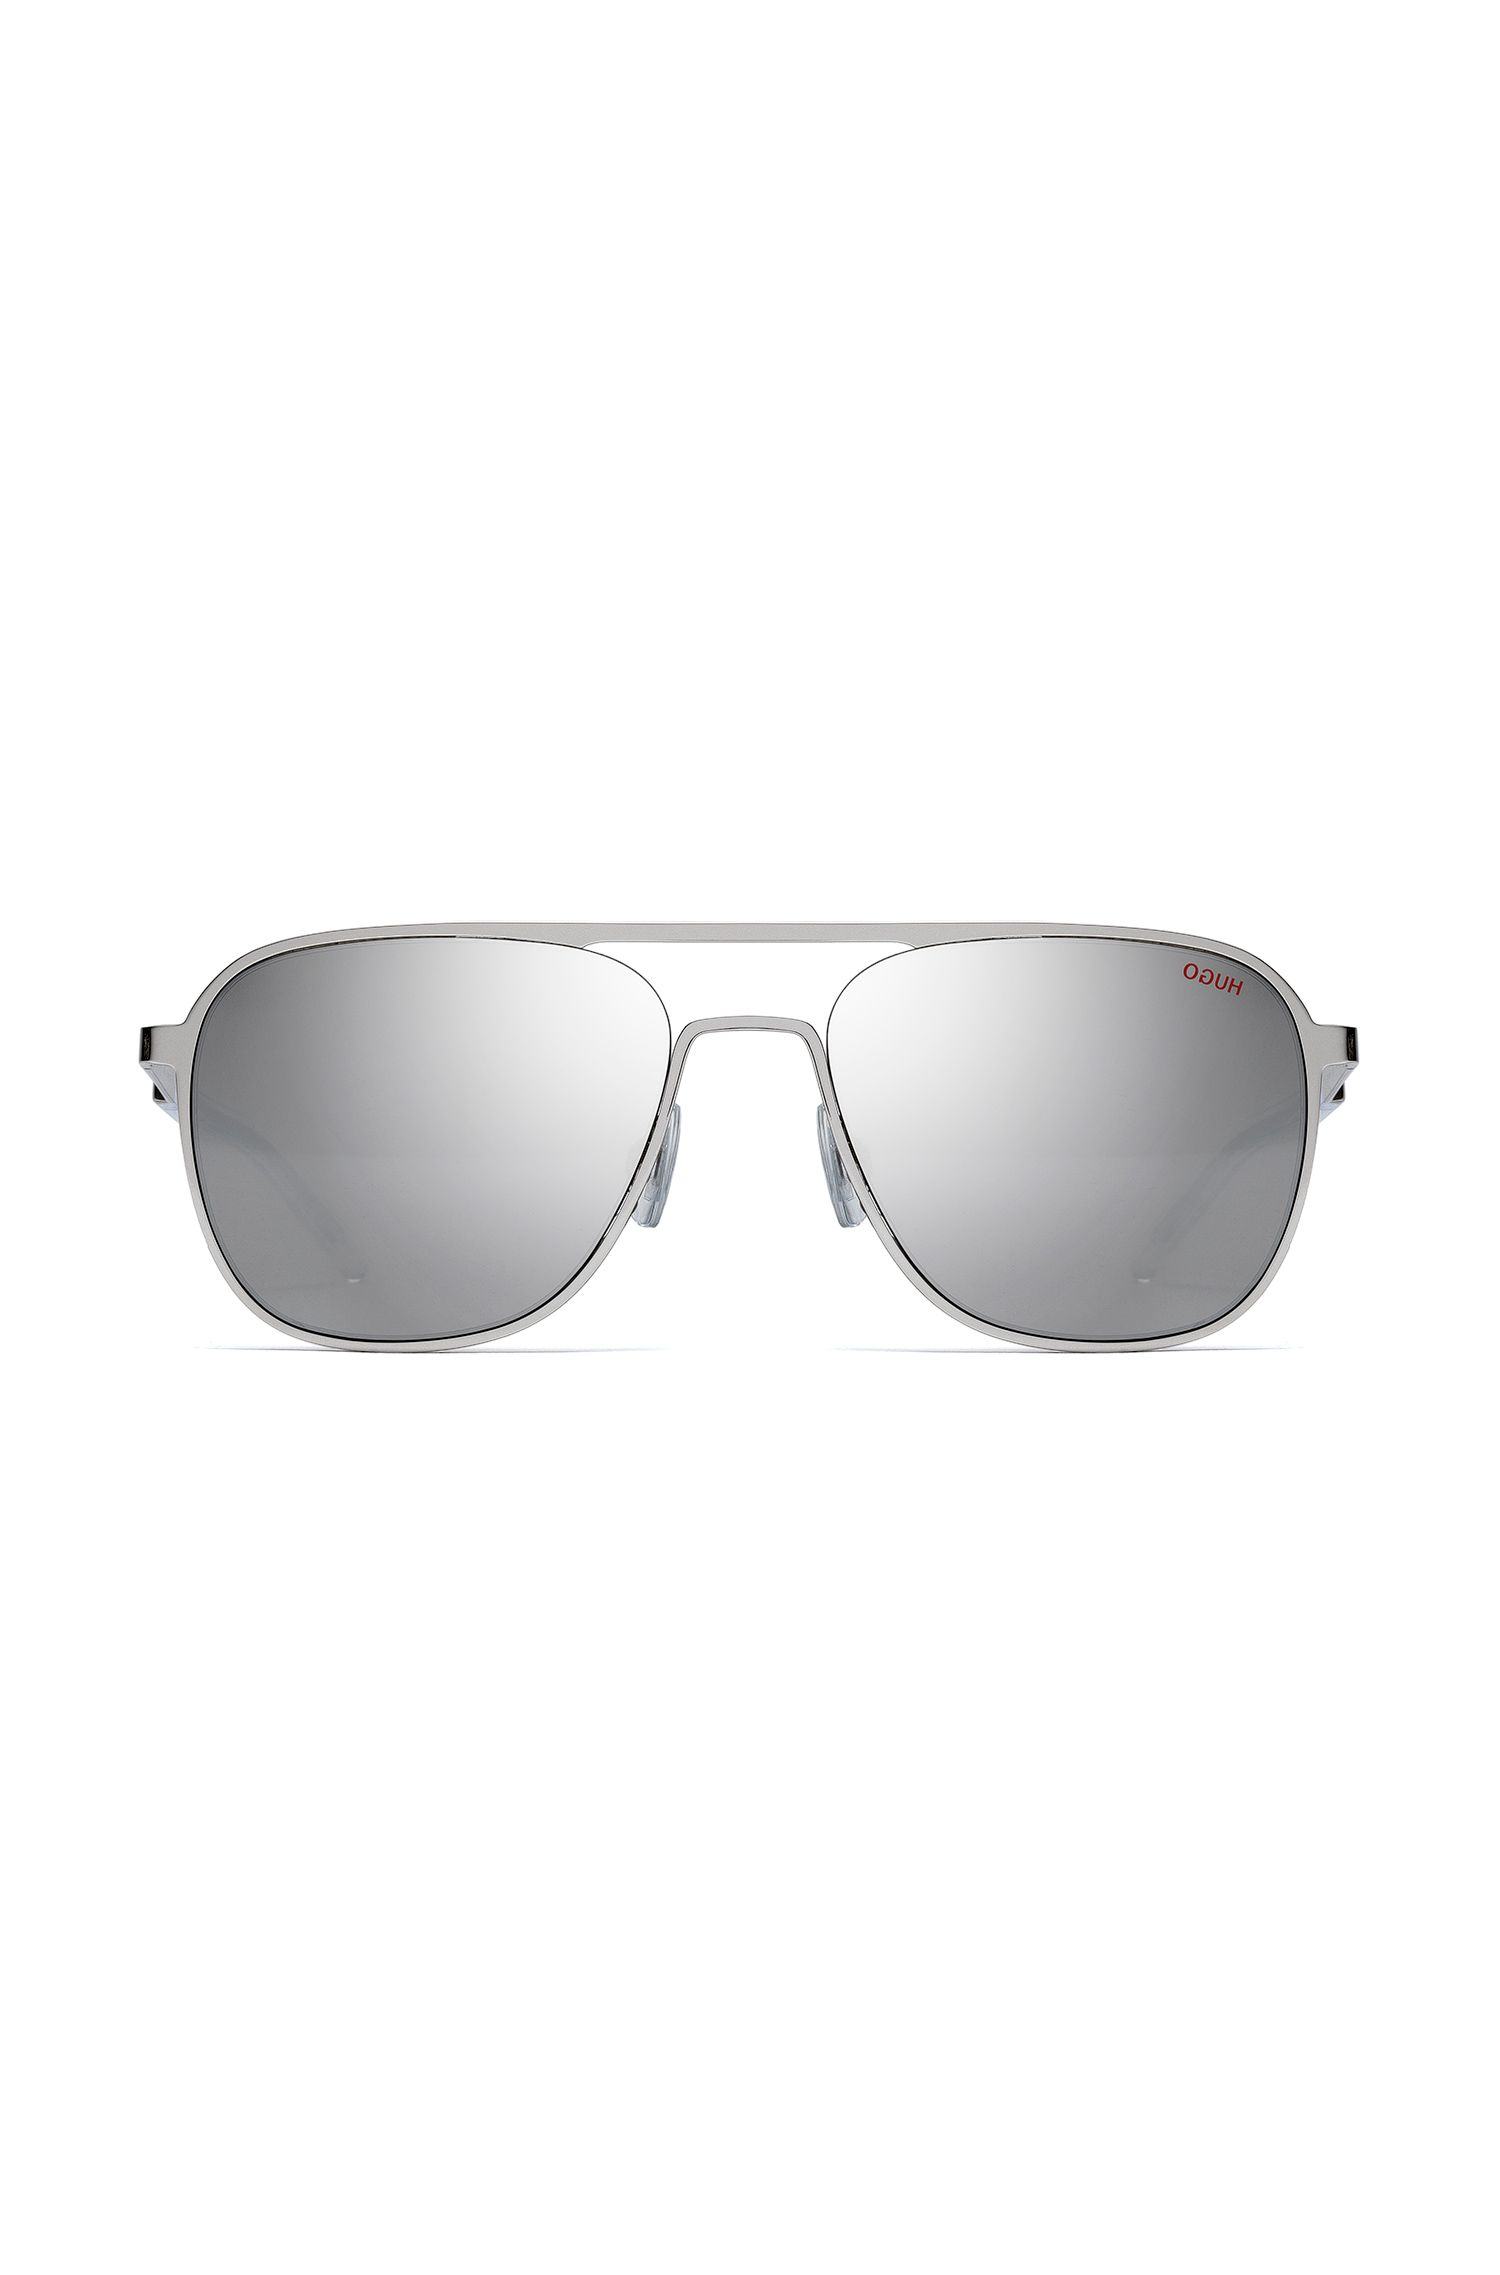 Silver-tone aviator sunglasses with mirrored lenses, Silver